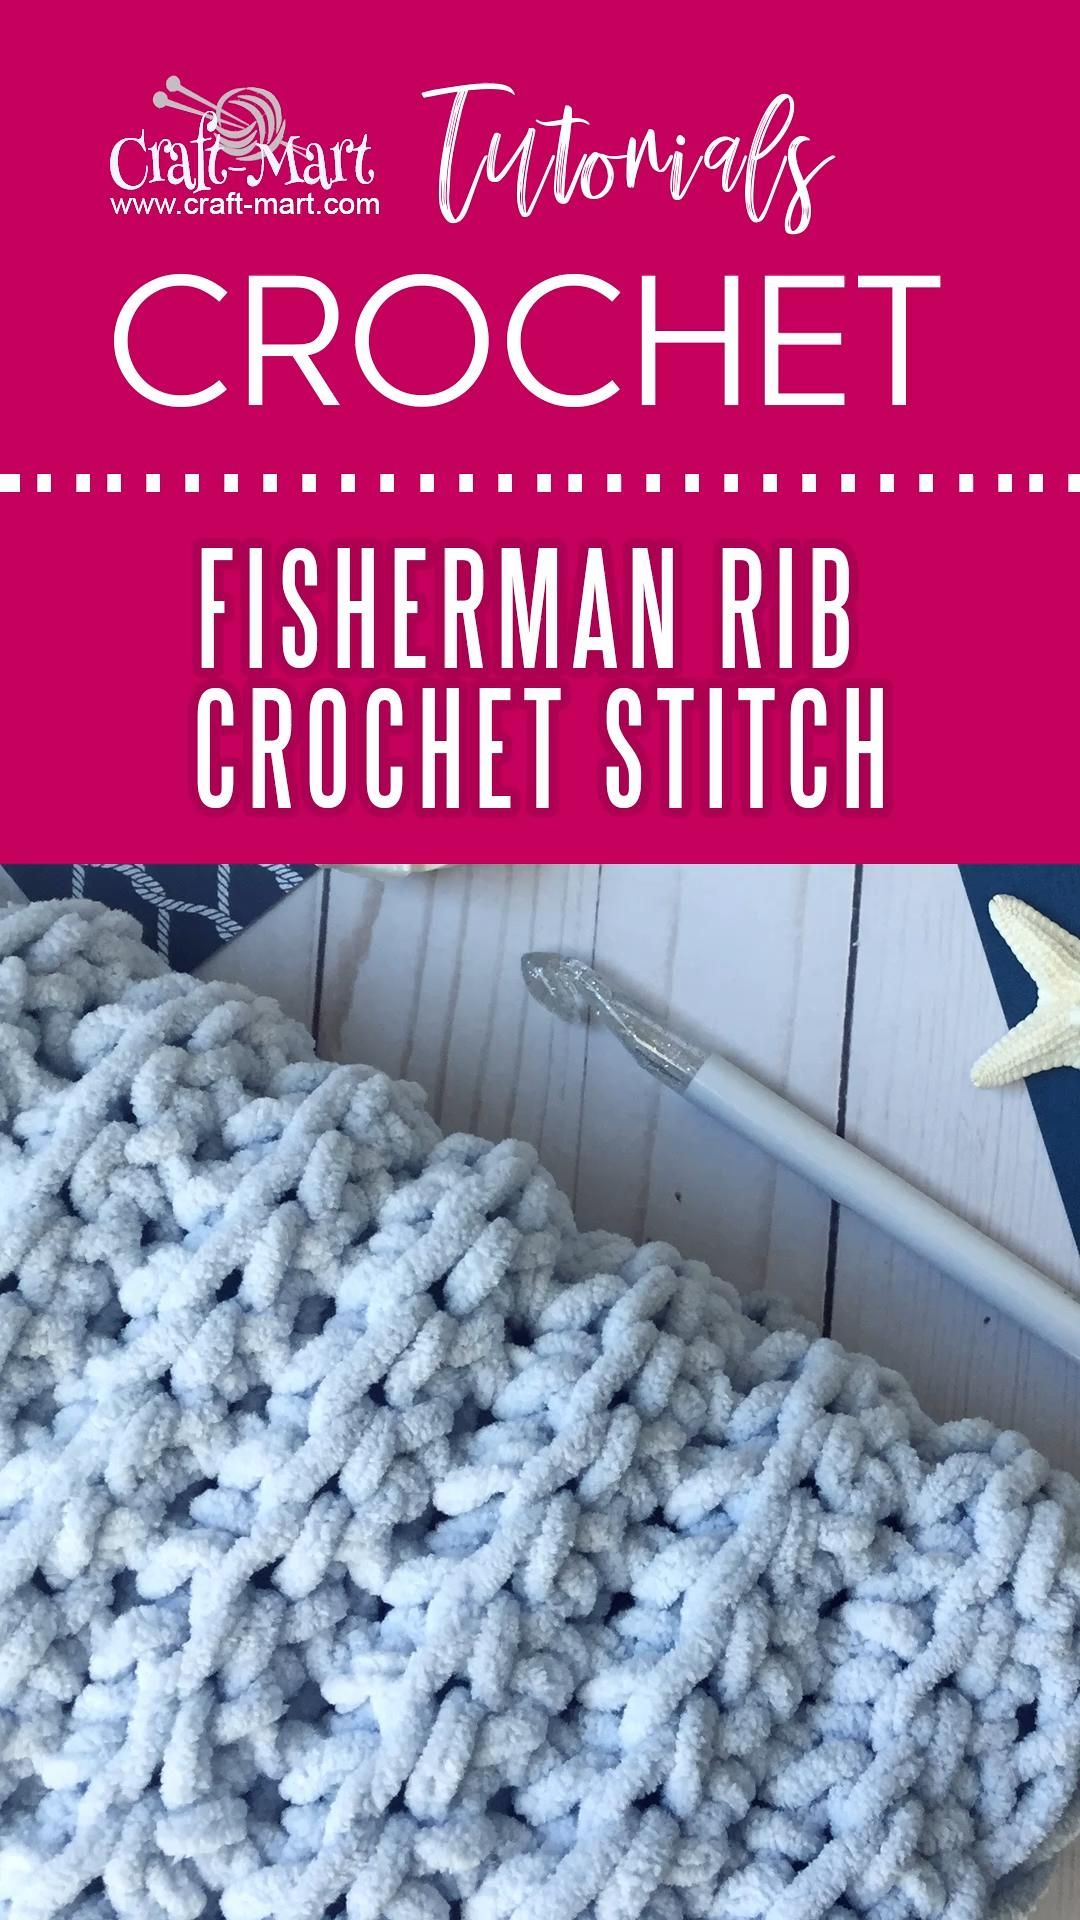 Fisherman Rib Crochet Stitch